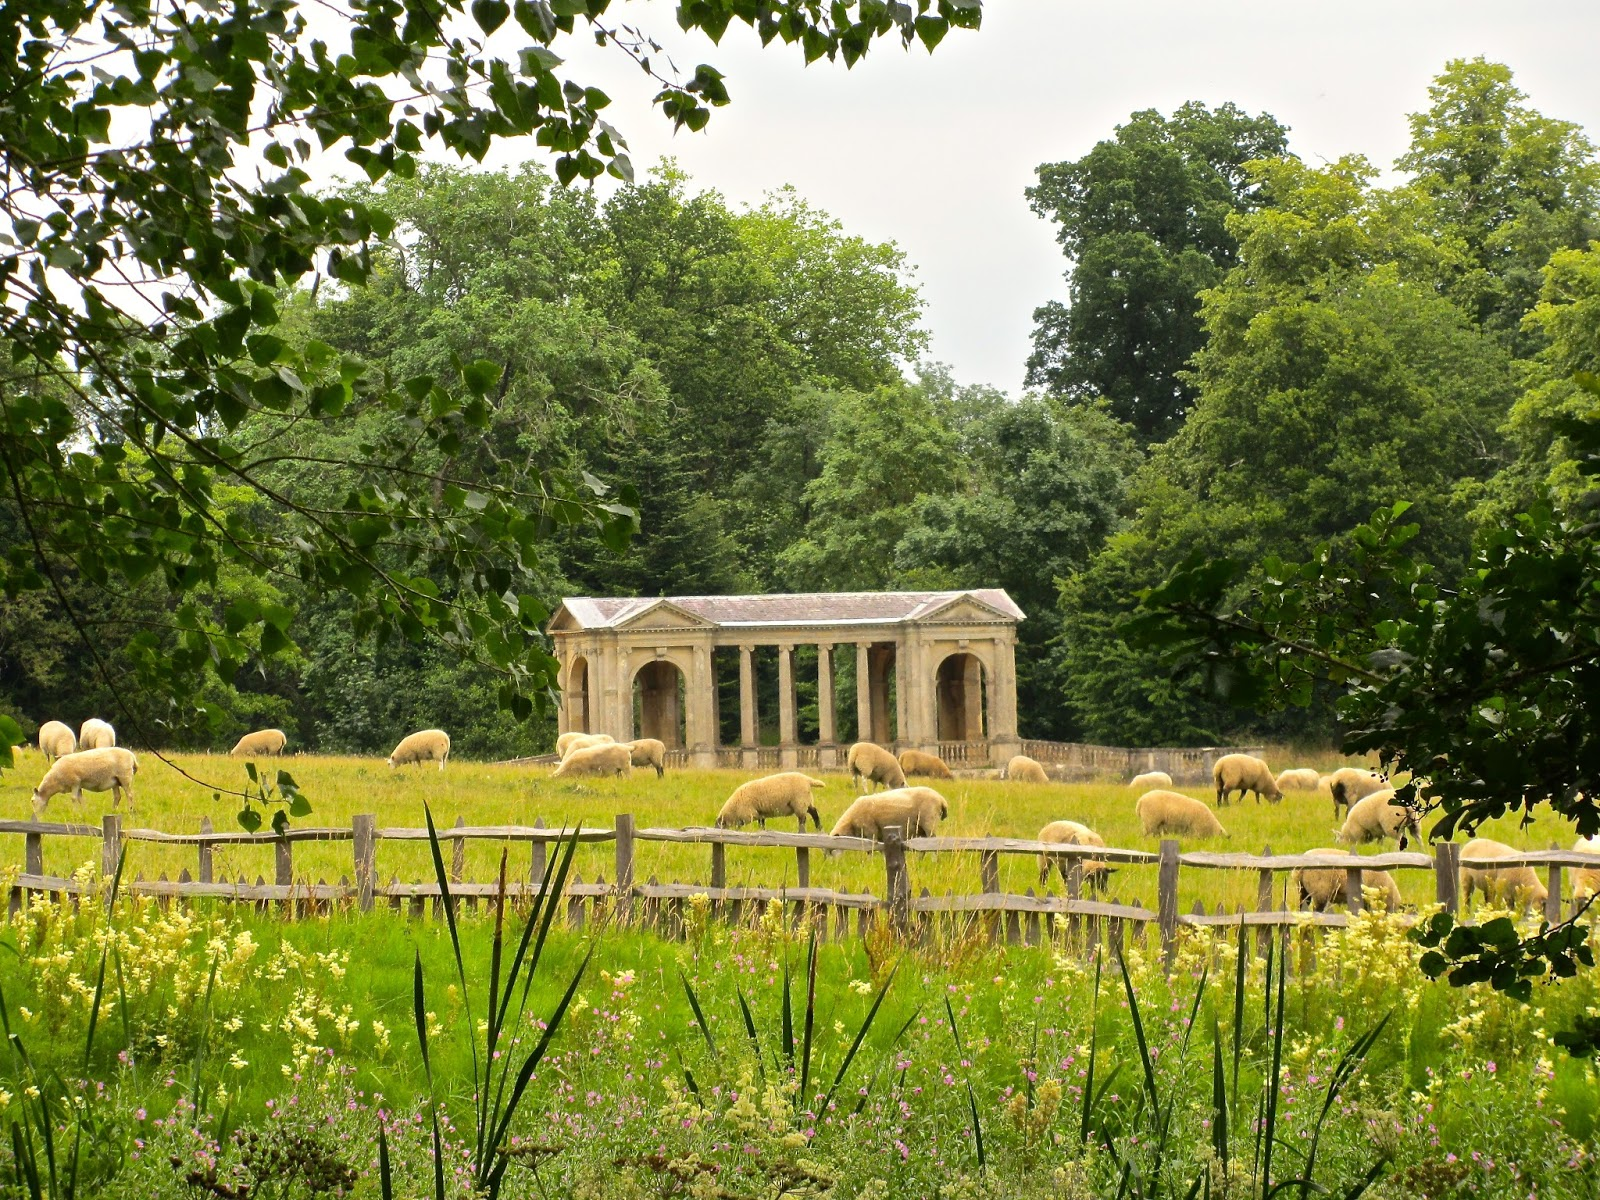 Curiouser and curiouser stowe breathtakingly beautiful landscape stowe gardens and manor house in buckingham is no exception there are over 250 acres of stunning informal landscape with over 40 historic workwithnaturefo